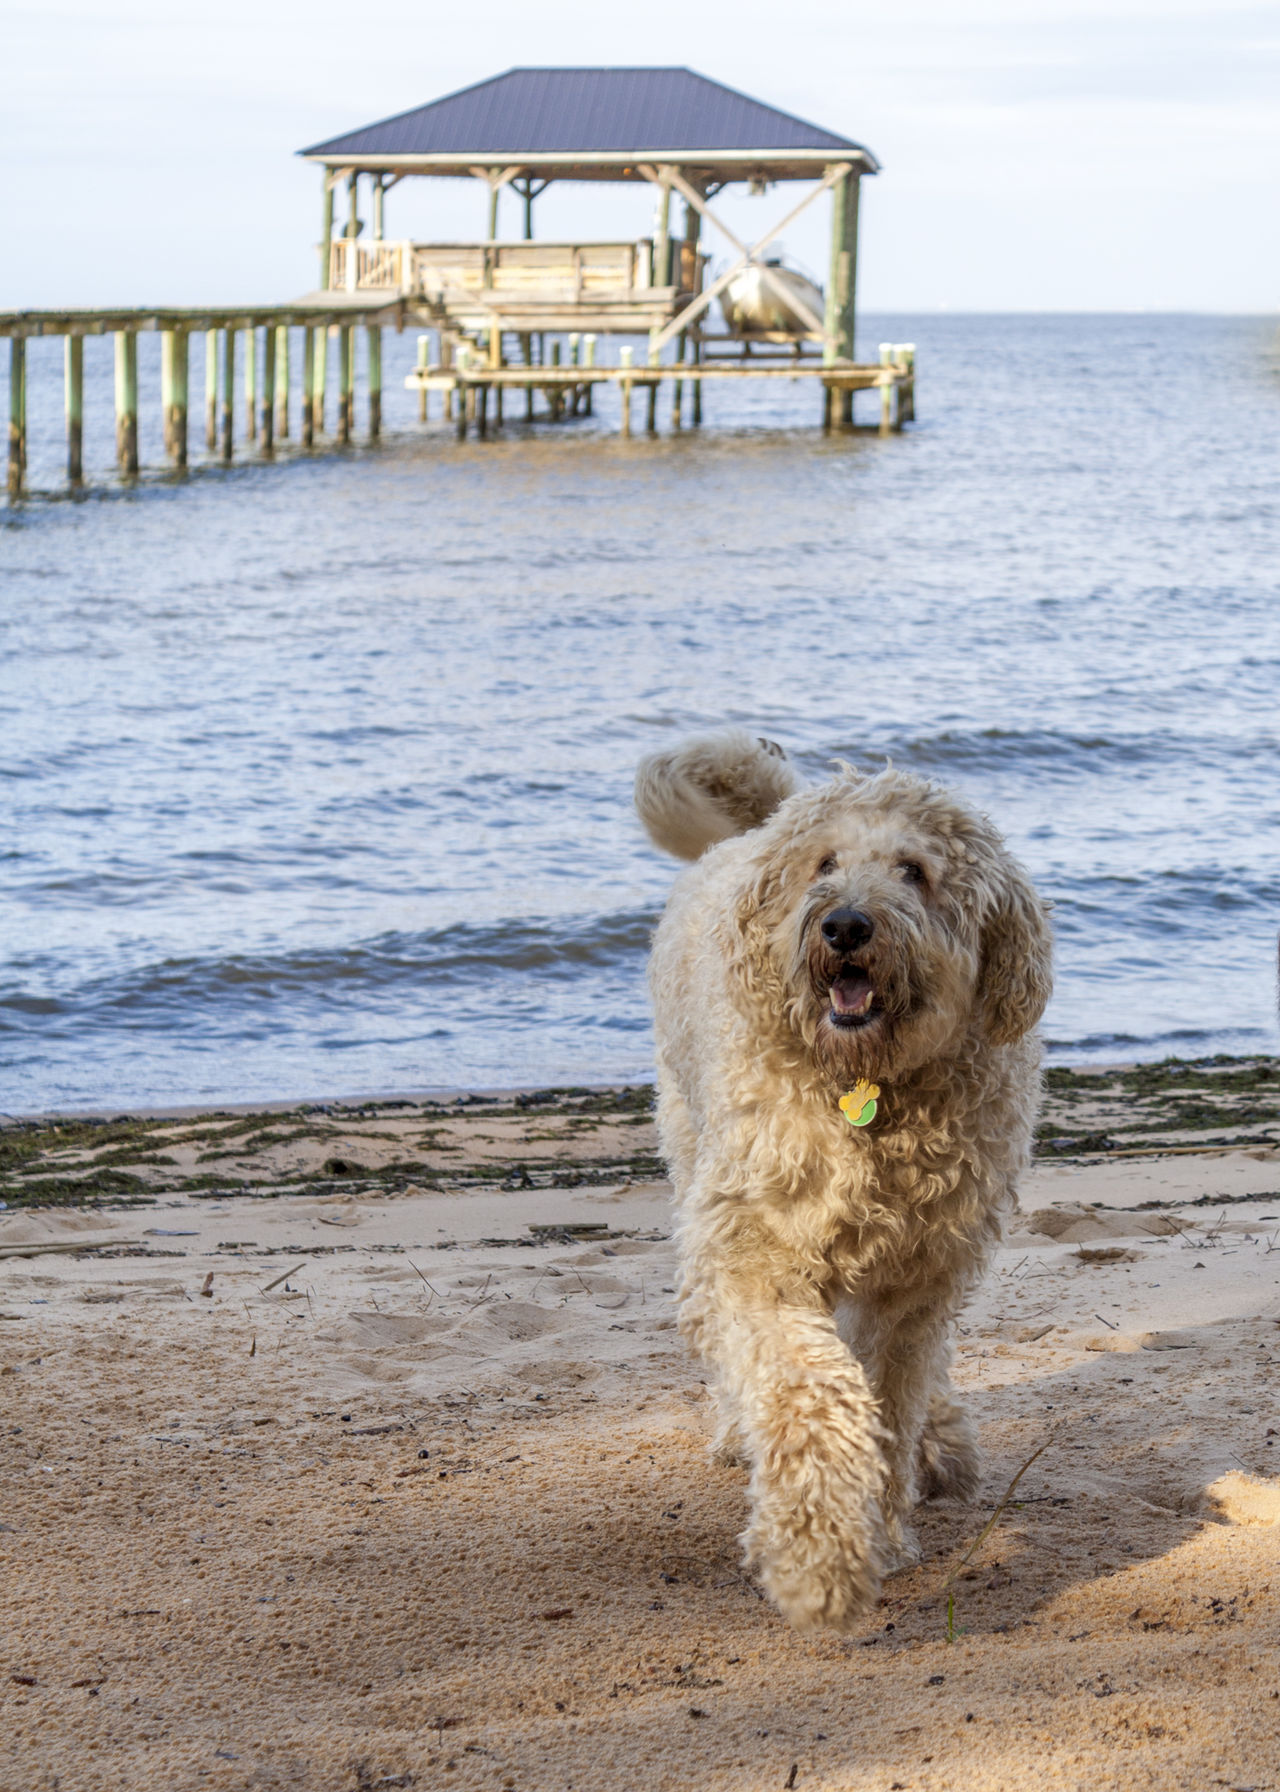 Beach Beach Life Dog Domestic Animals Happy Day Happy Dog Labradoodle Looking At Camera Mobile Alabama  Mobile Bay Morning Sun No People Ocean One Animal Pets Salt And Sand Sand Shaggy Shaggy Dog Shore Standing Warf Water Happiness Joy Of Life